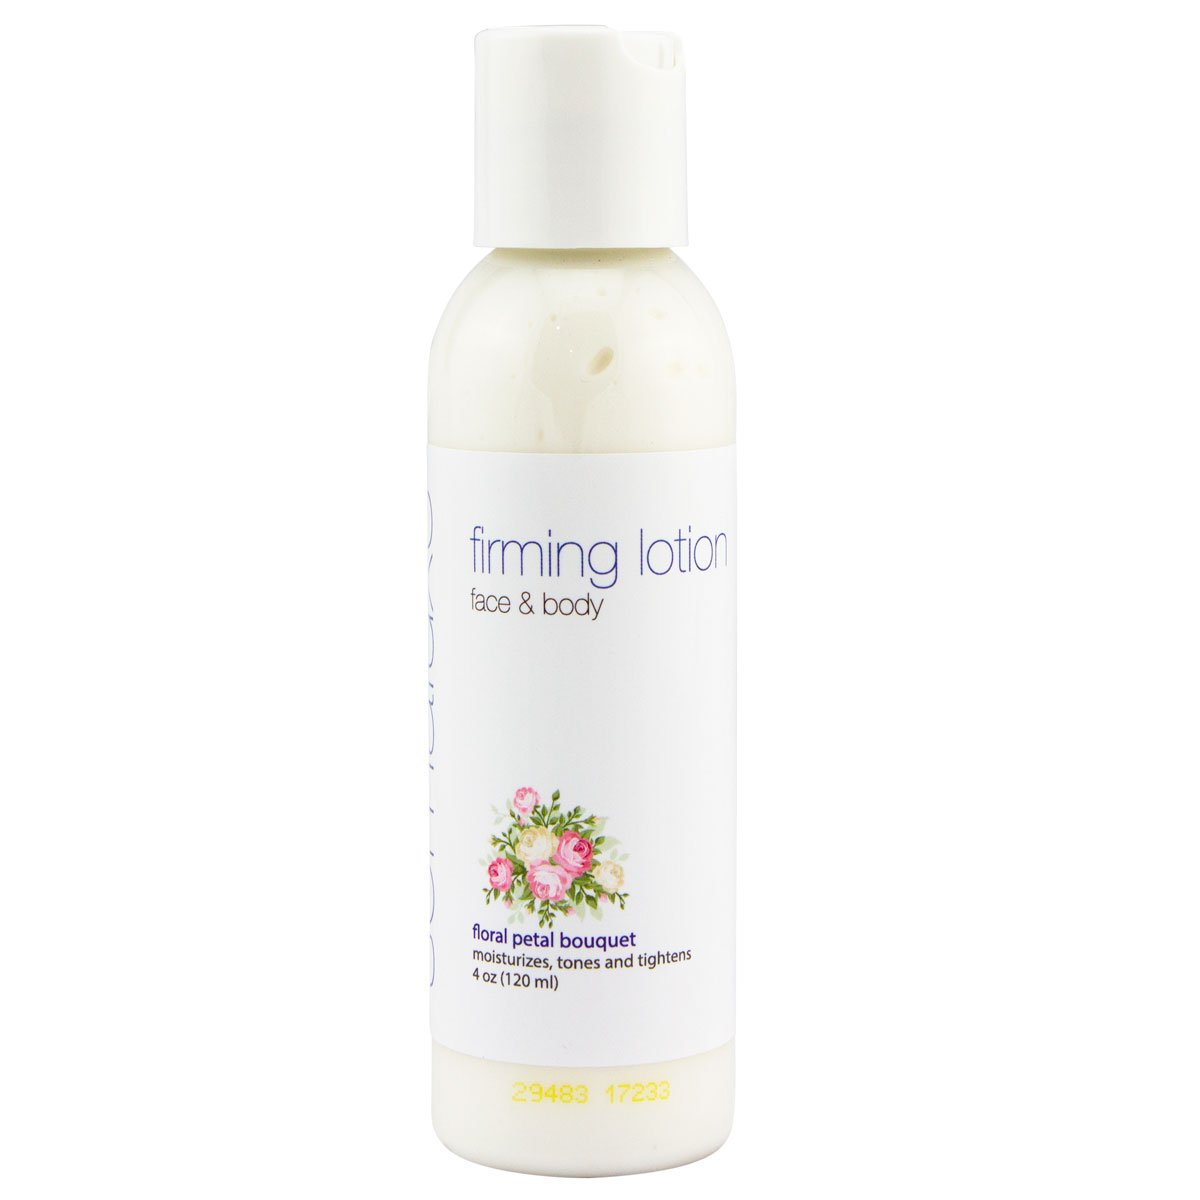 Somaluxe Firming Lotion with Collagen, CoQ10 and Vitamin C for Face, Neck and Body